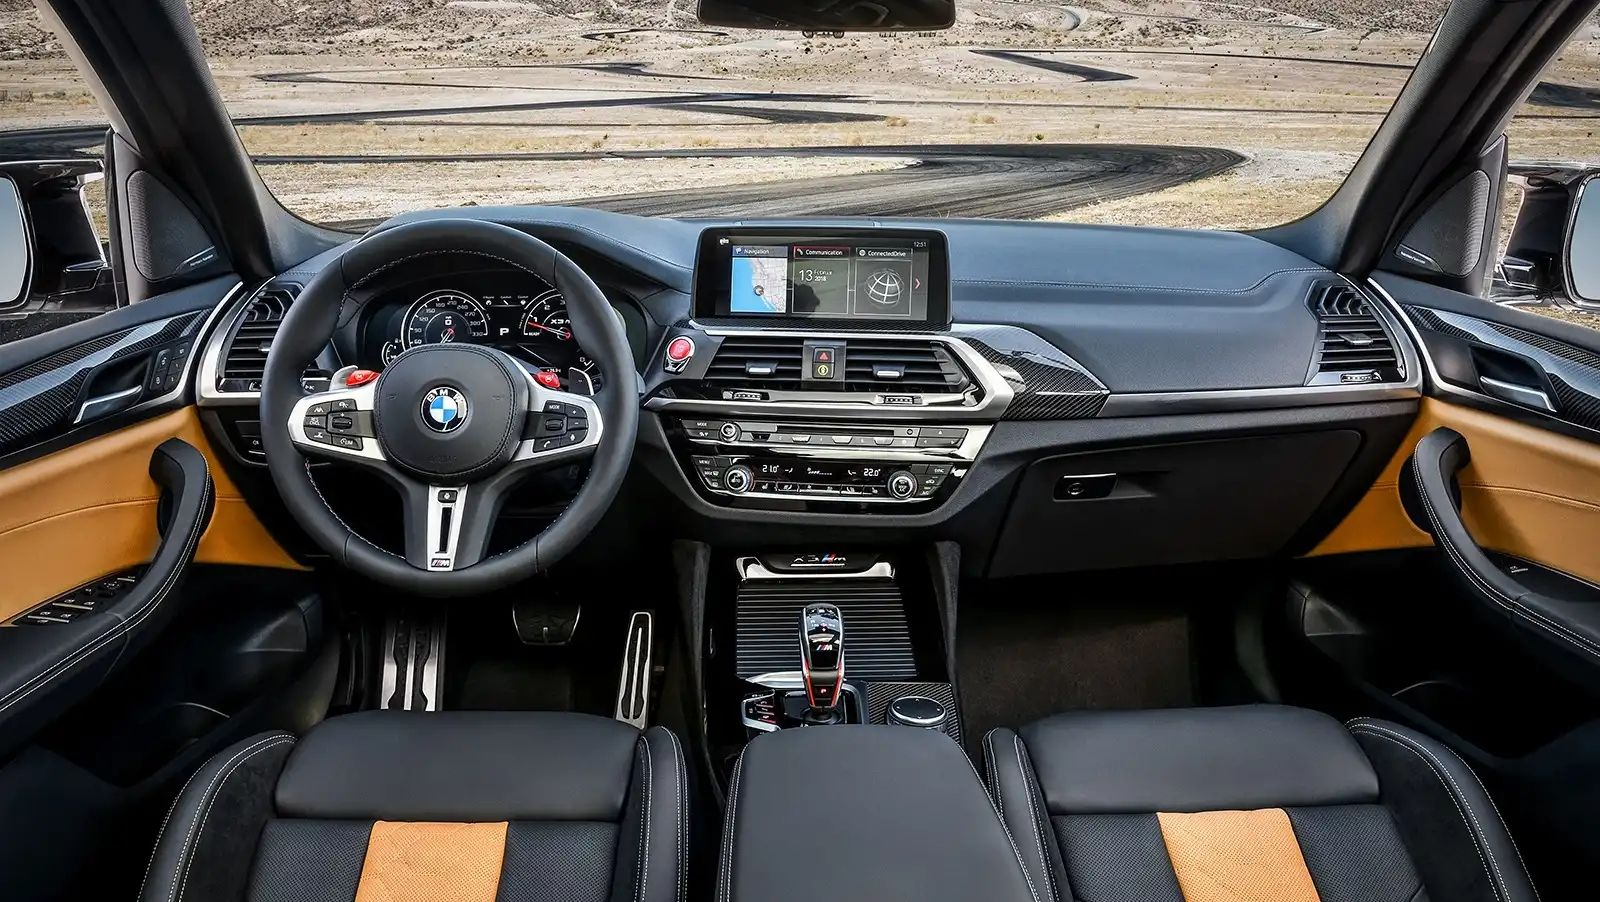 2020 Bmw X3 M Suv Interior Review Seating Infotainment Dashboard And Features Carindigo Com